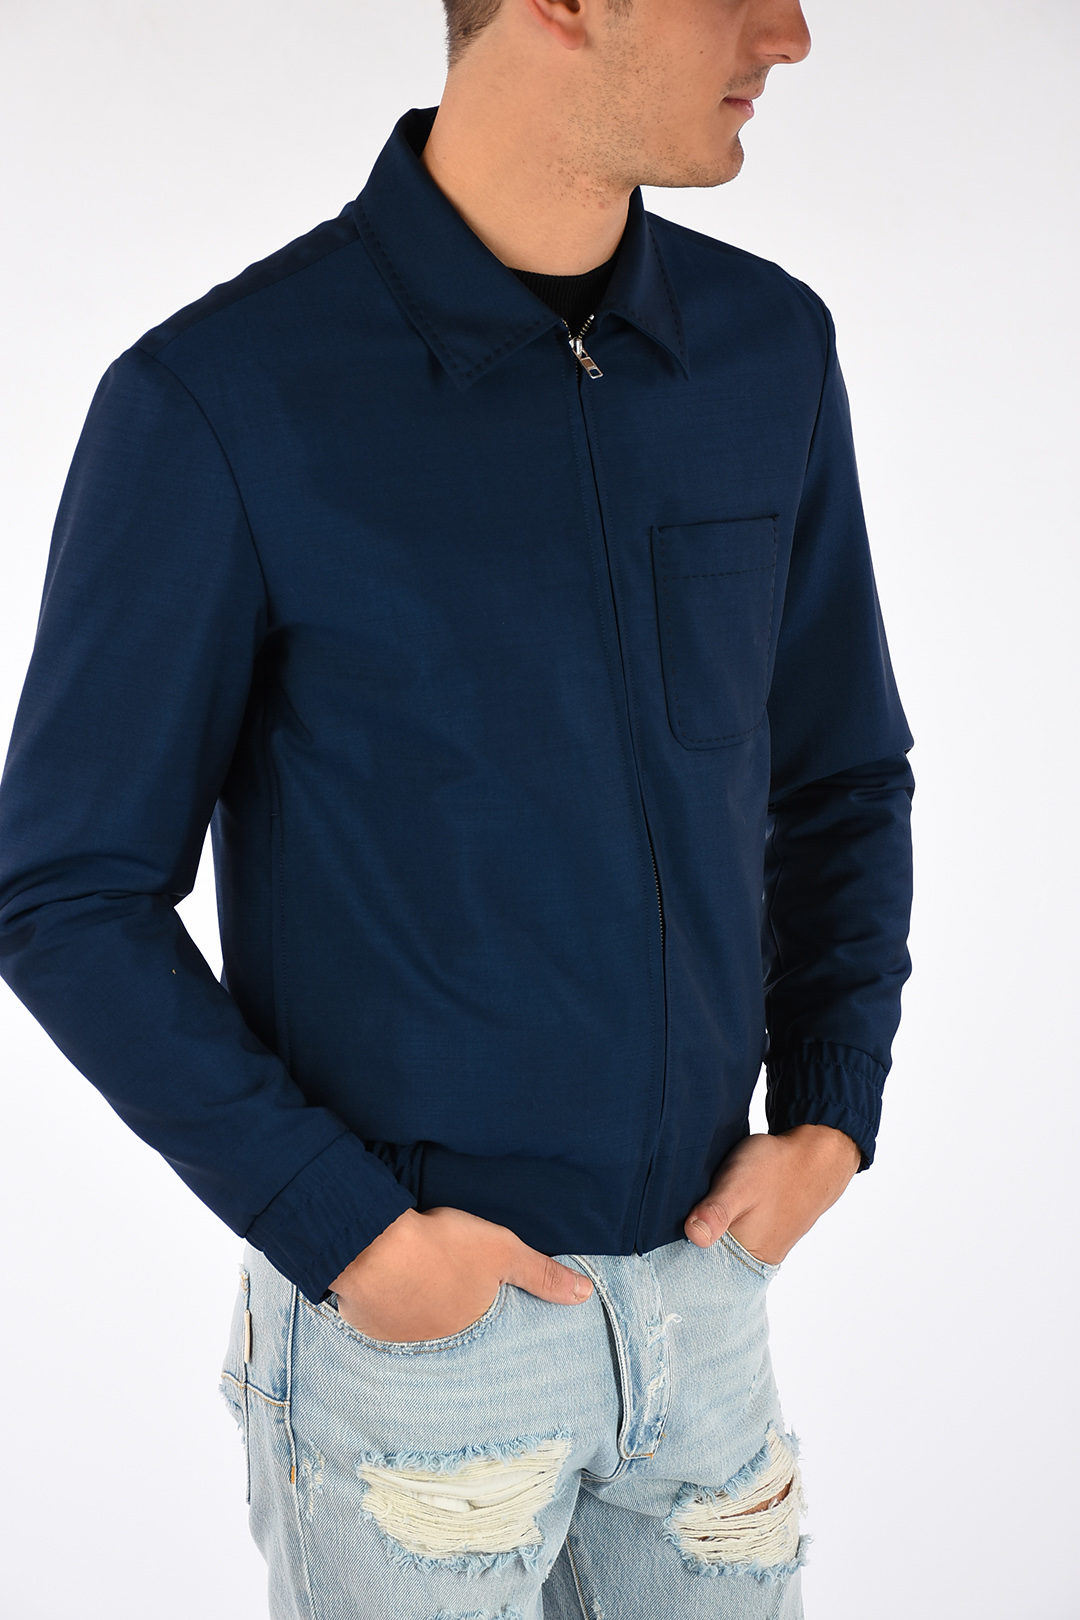 bbc6ce29d2cd Kenzo Mohair and wool Jacket men - Glamood Outlet